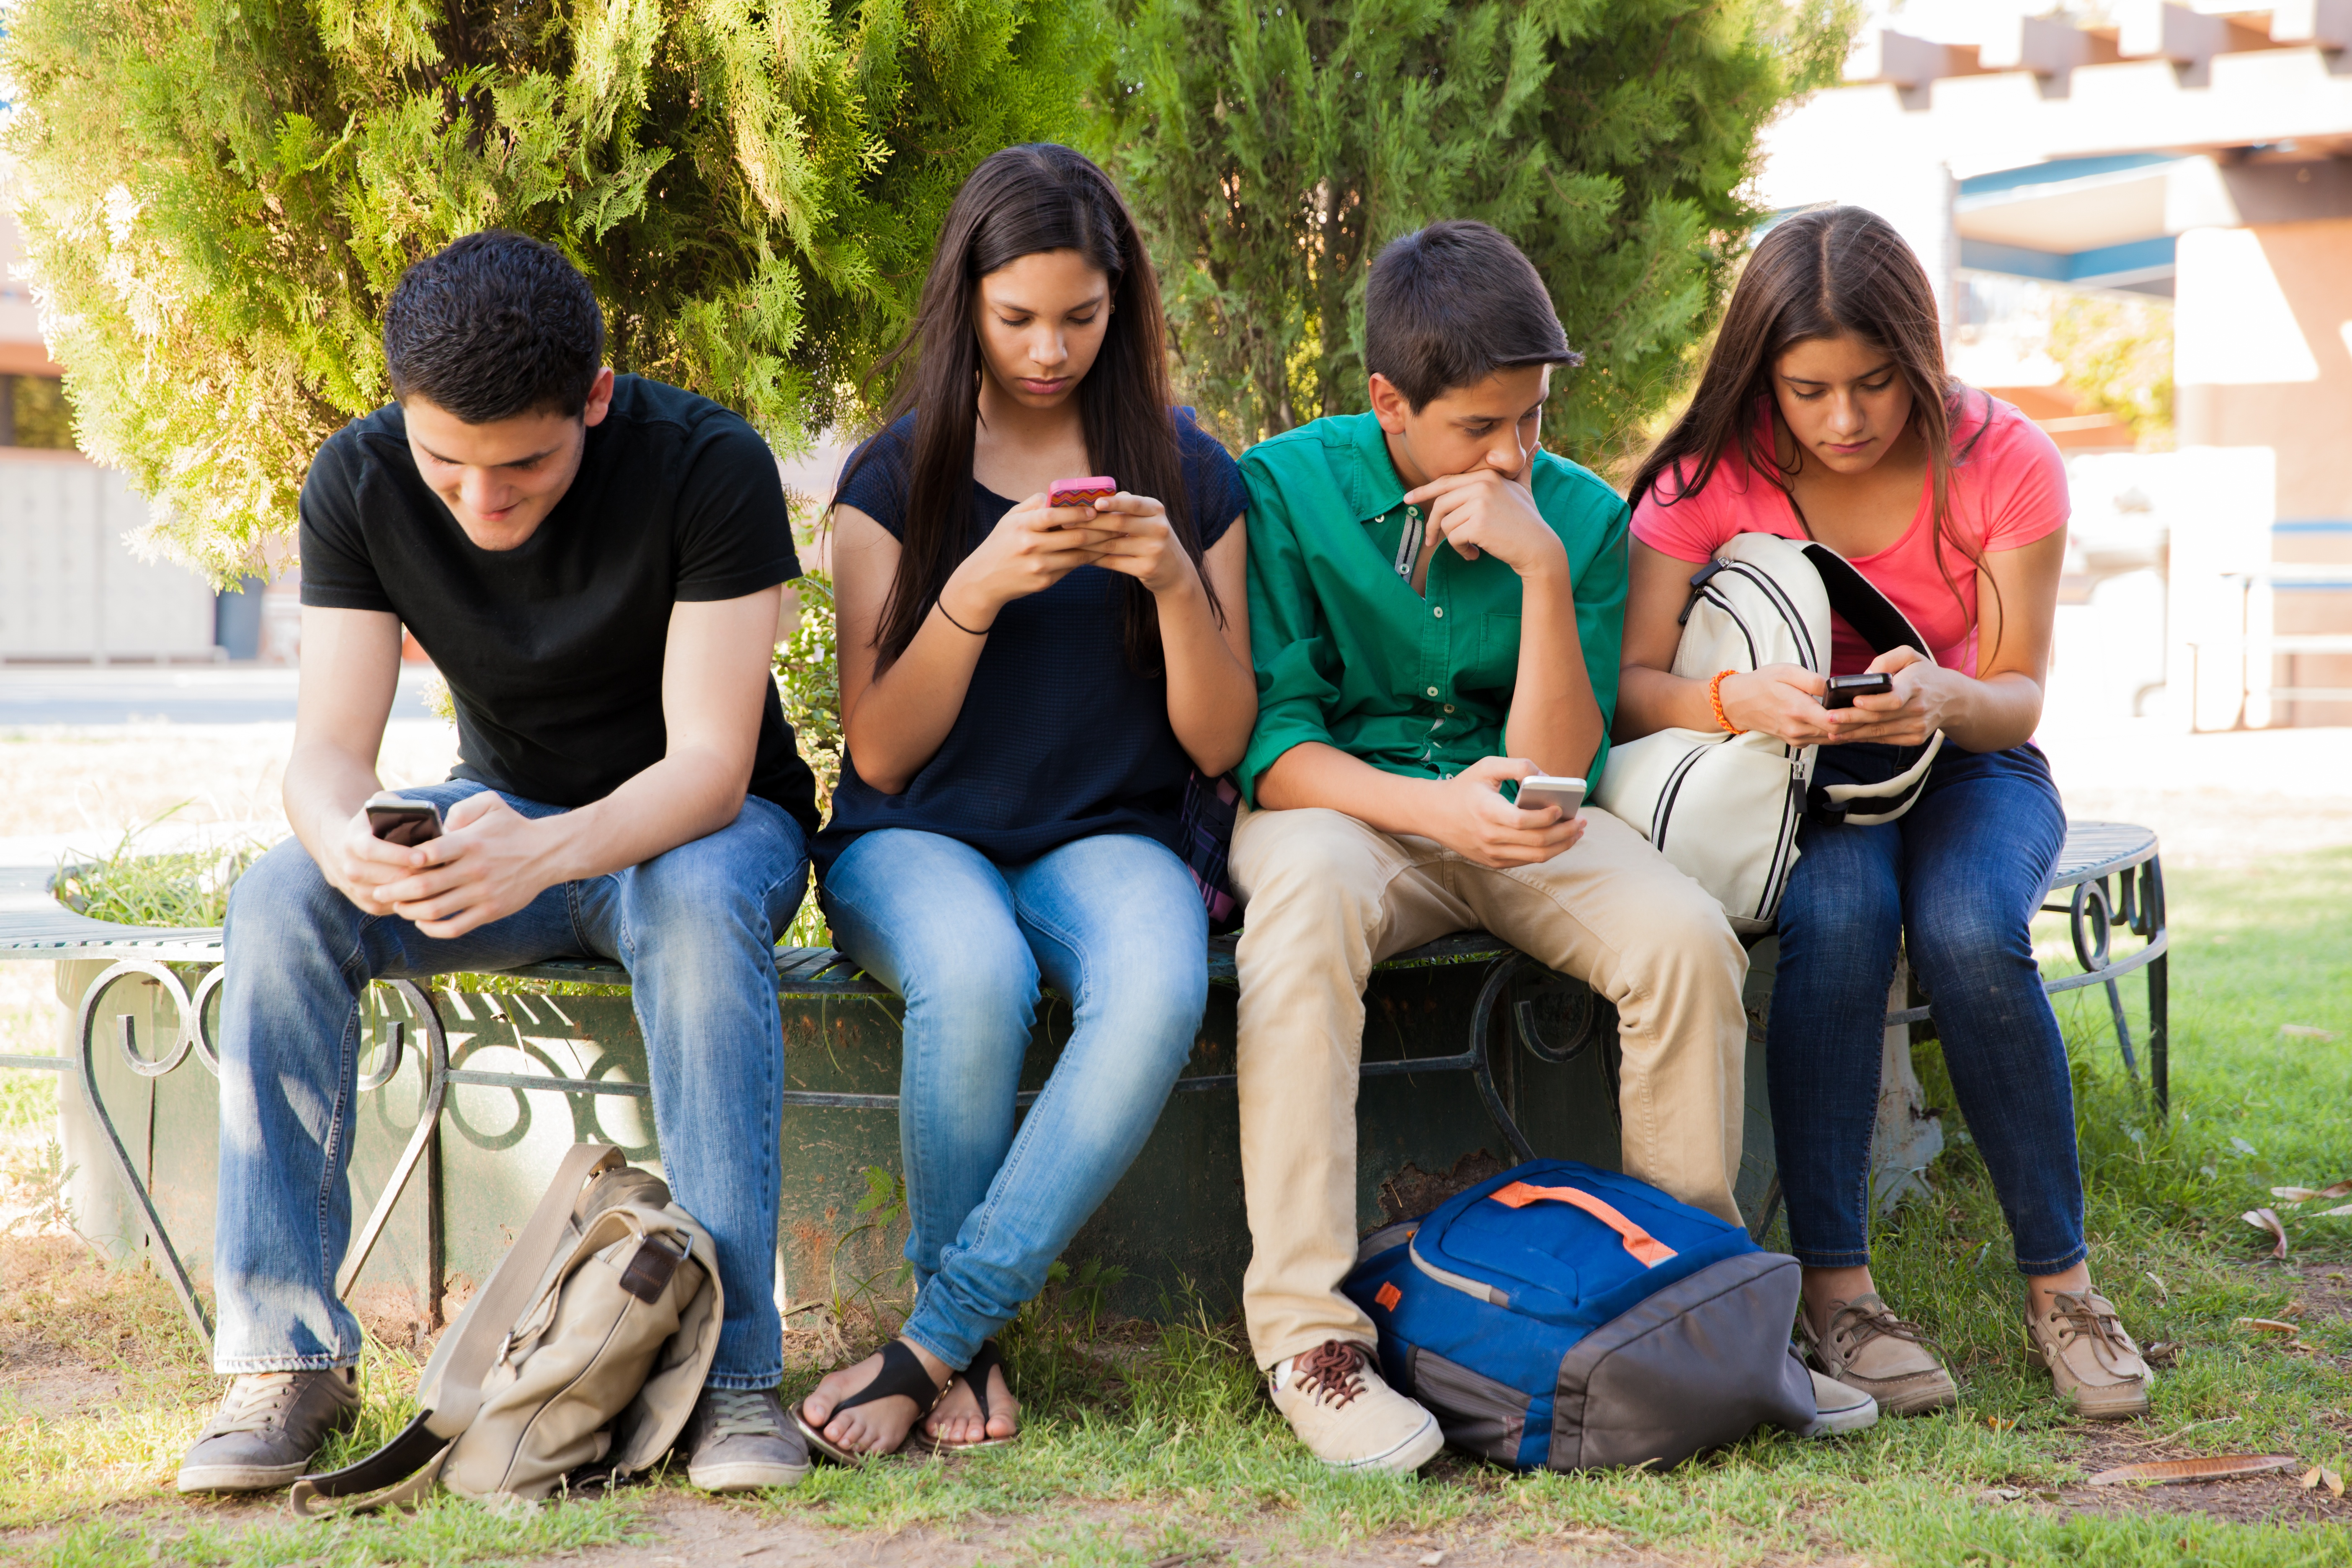 dailouge mukalma on use misuse of mobile phones between two students